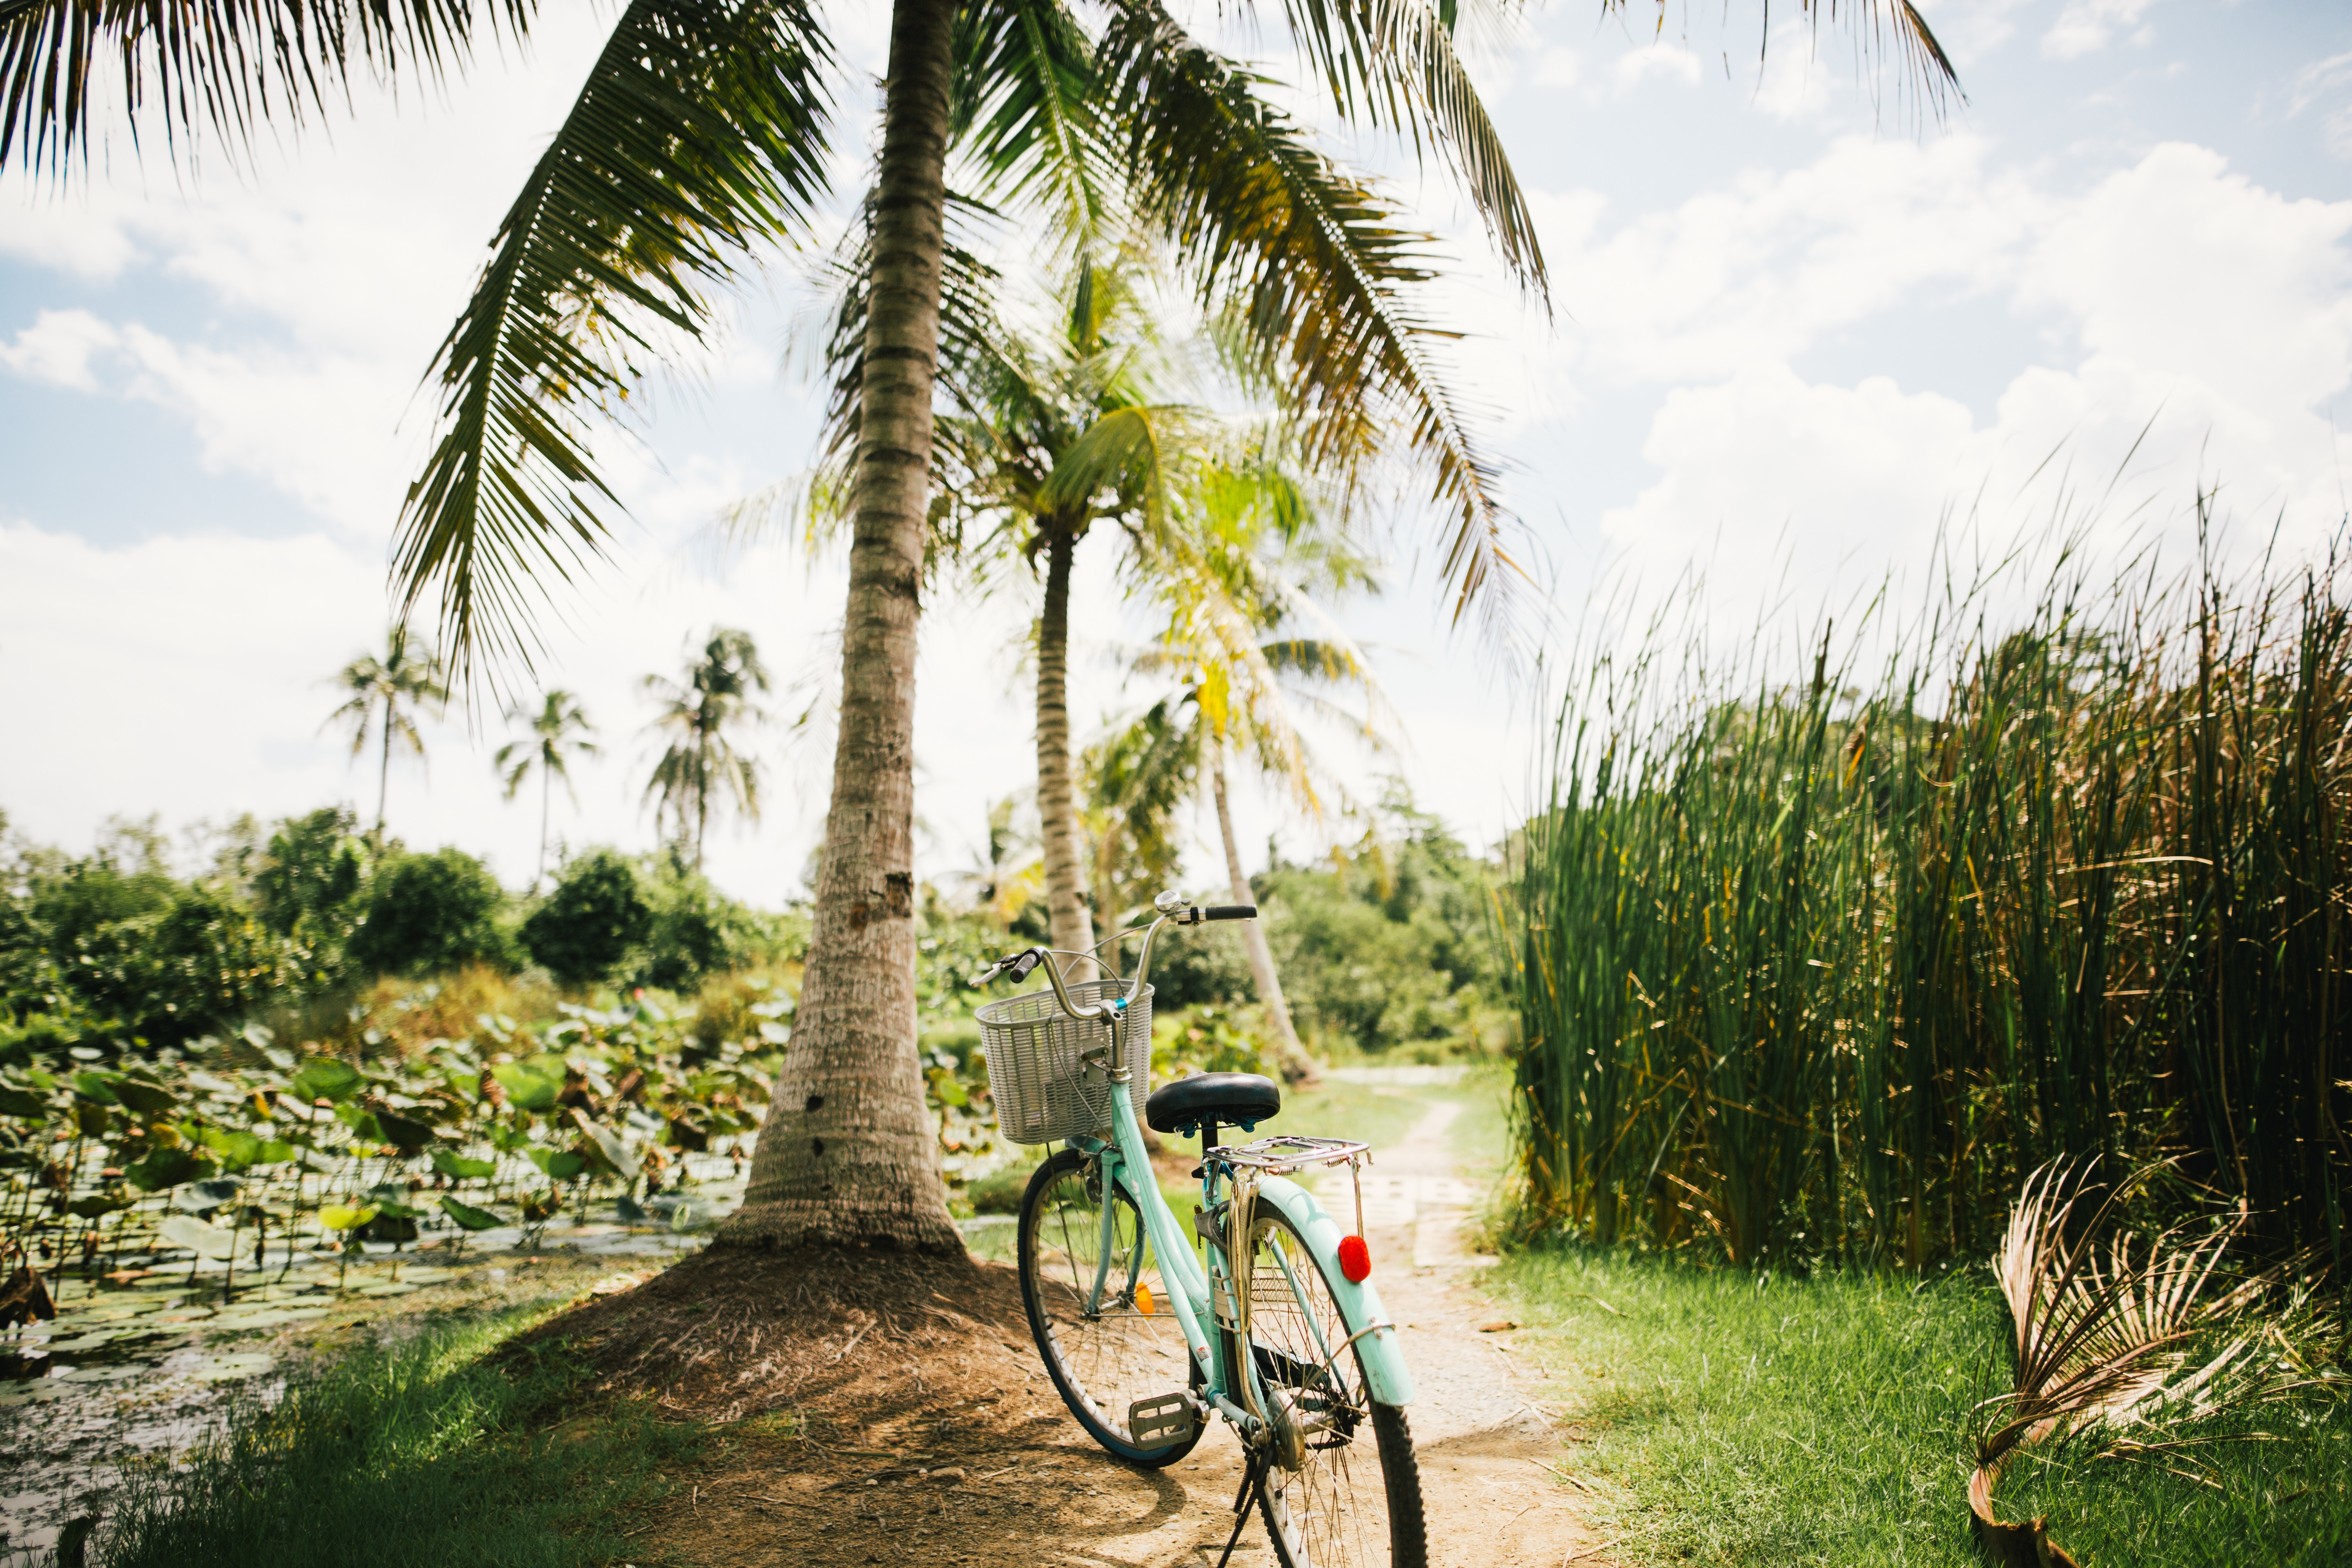 130027 free wallpaper 320x480 for phone, download images Tropics, Palms, Miscellanea, Miscellaneous, Sunlight, Bicycle 320x480 for mobile